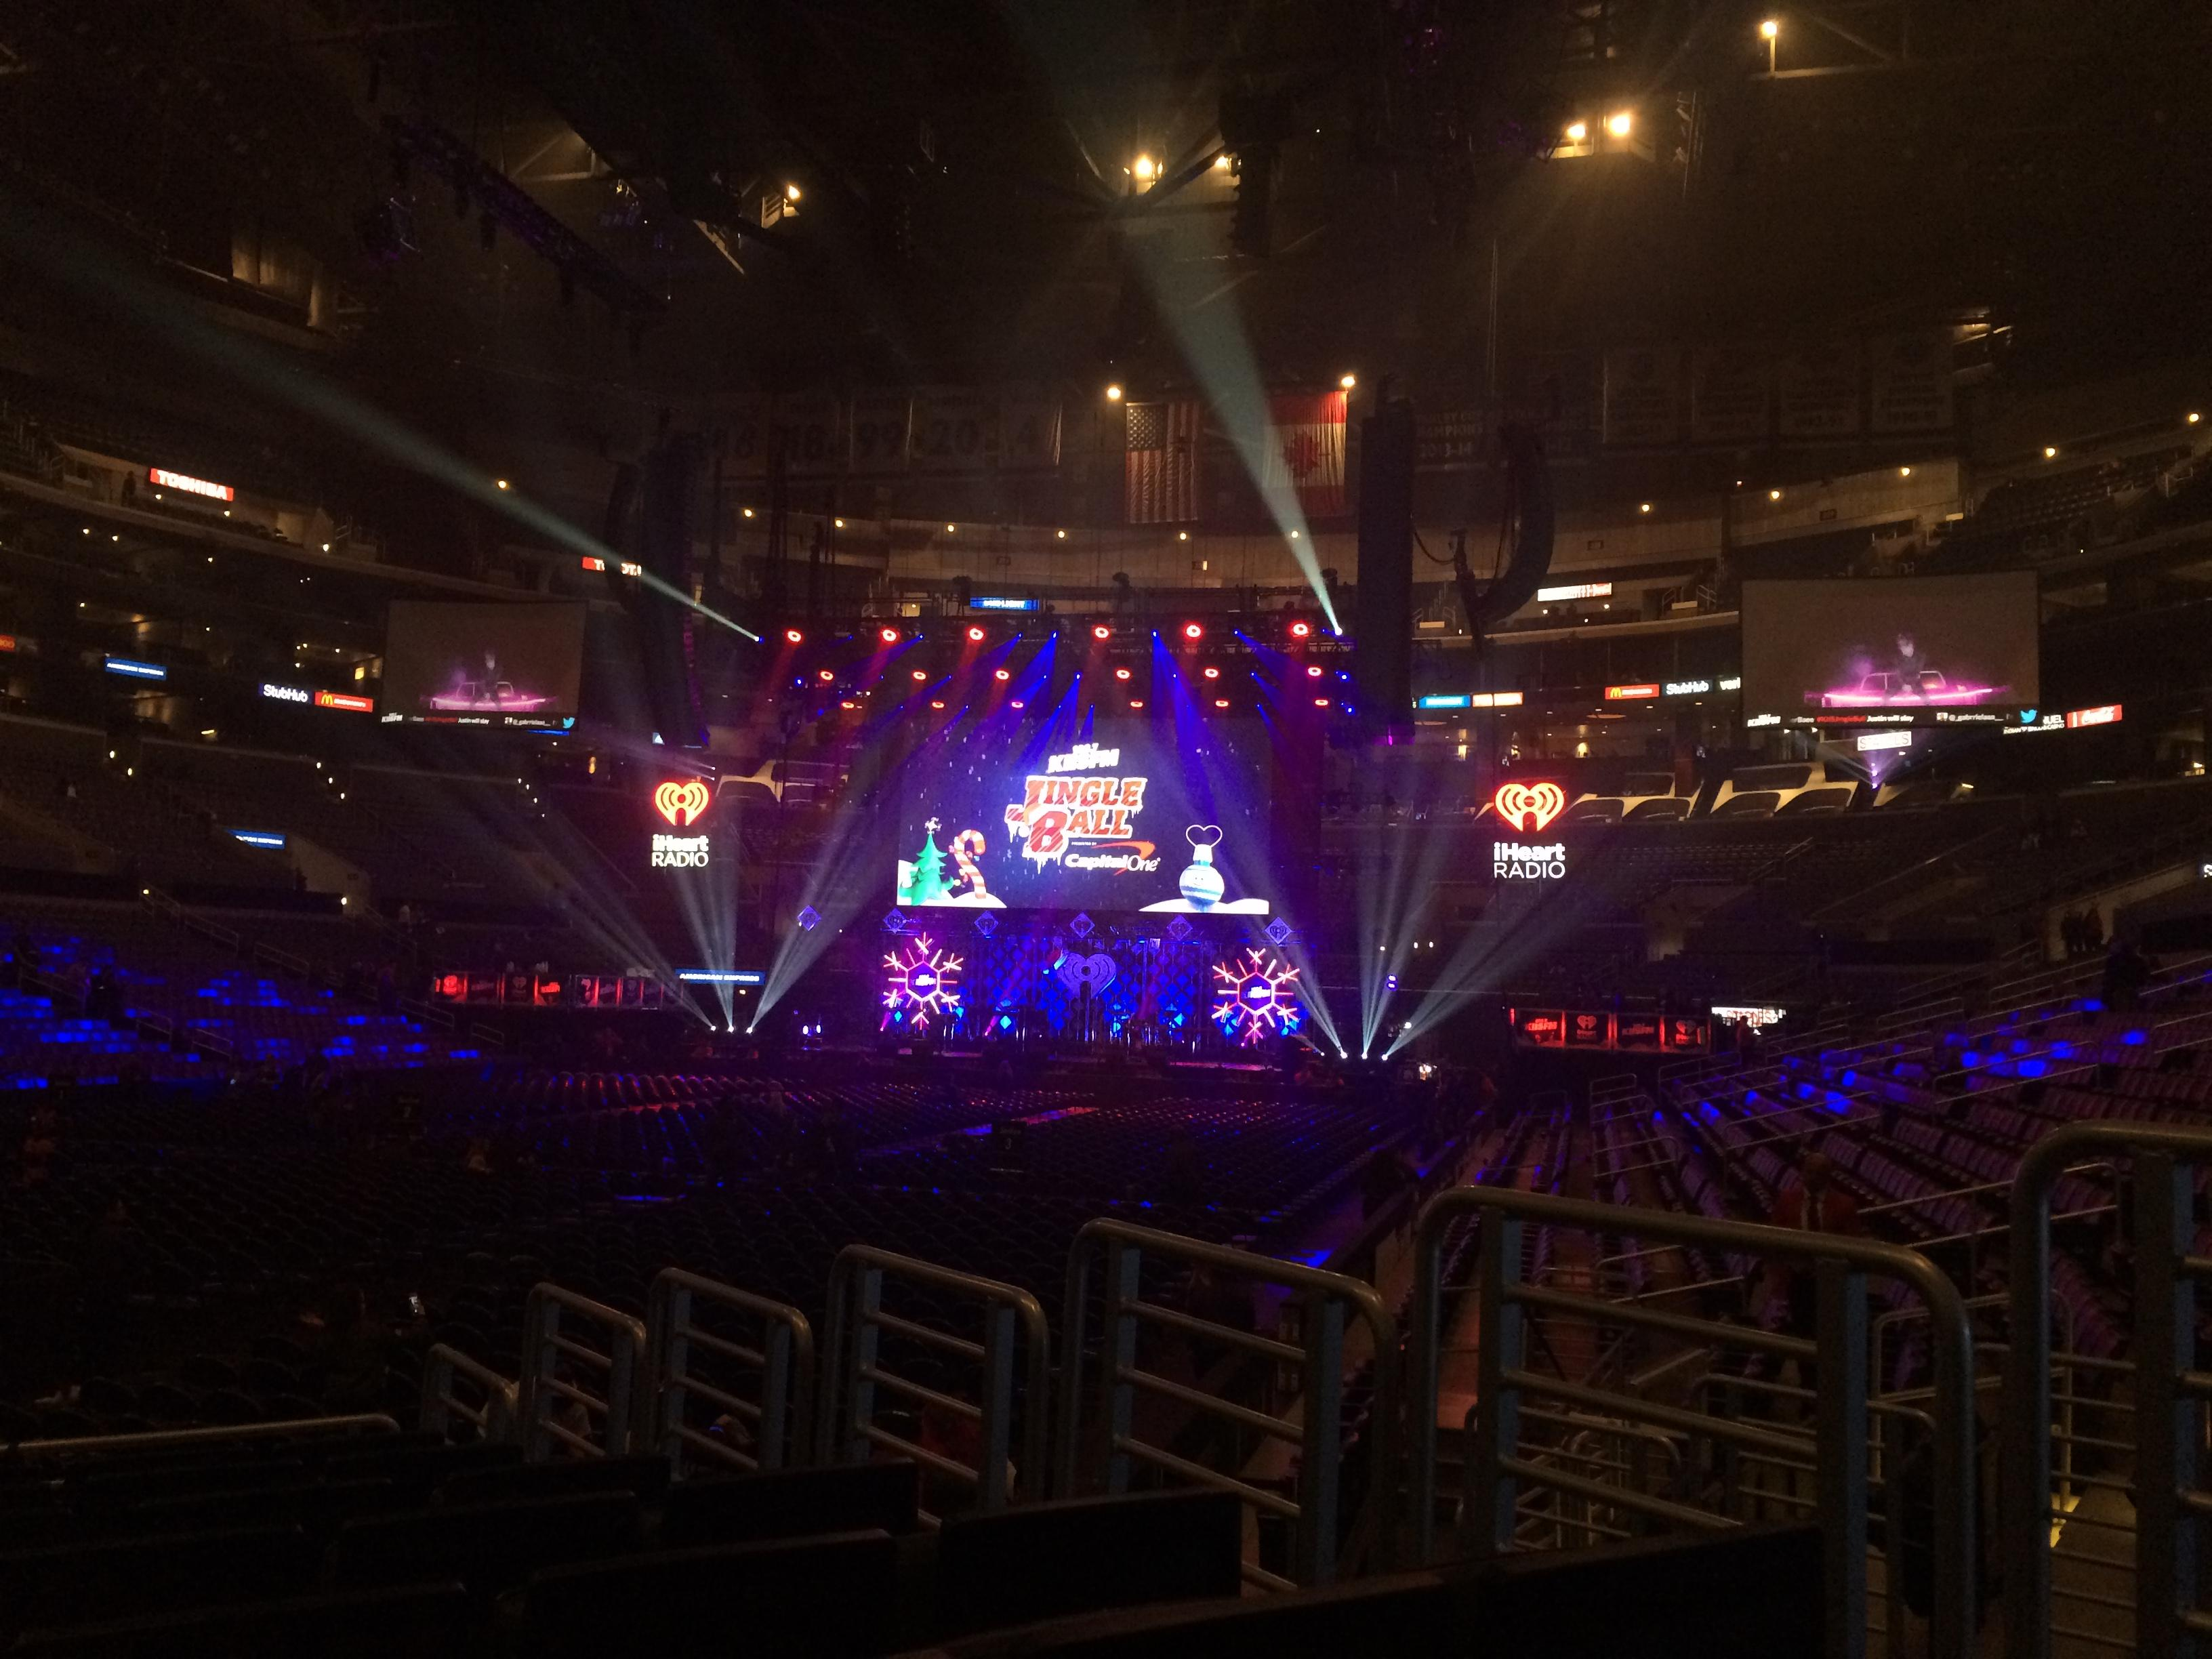 Staples Center Secção 105 Fila 10 Lugar 4